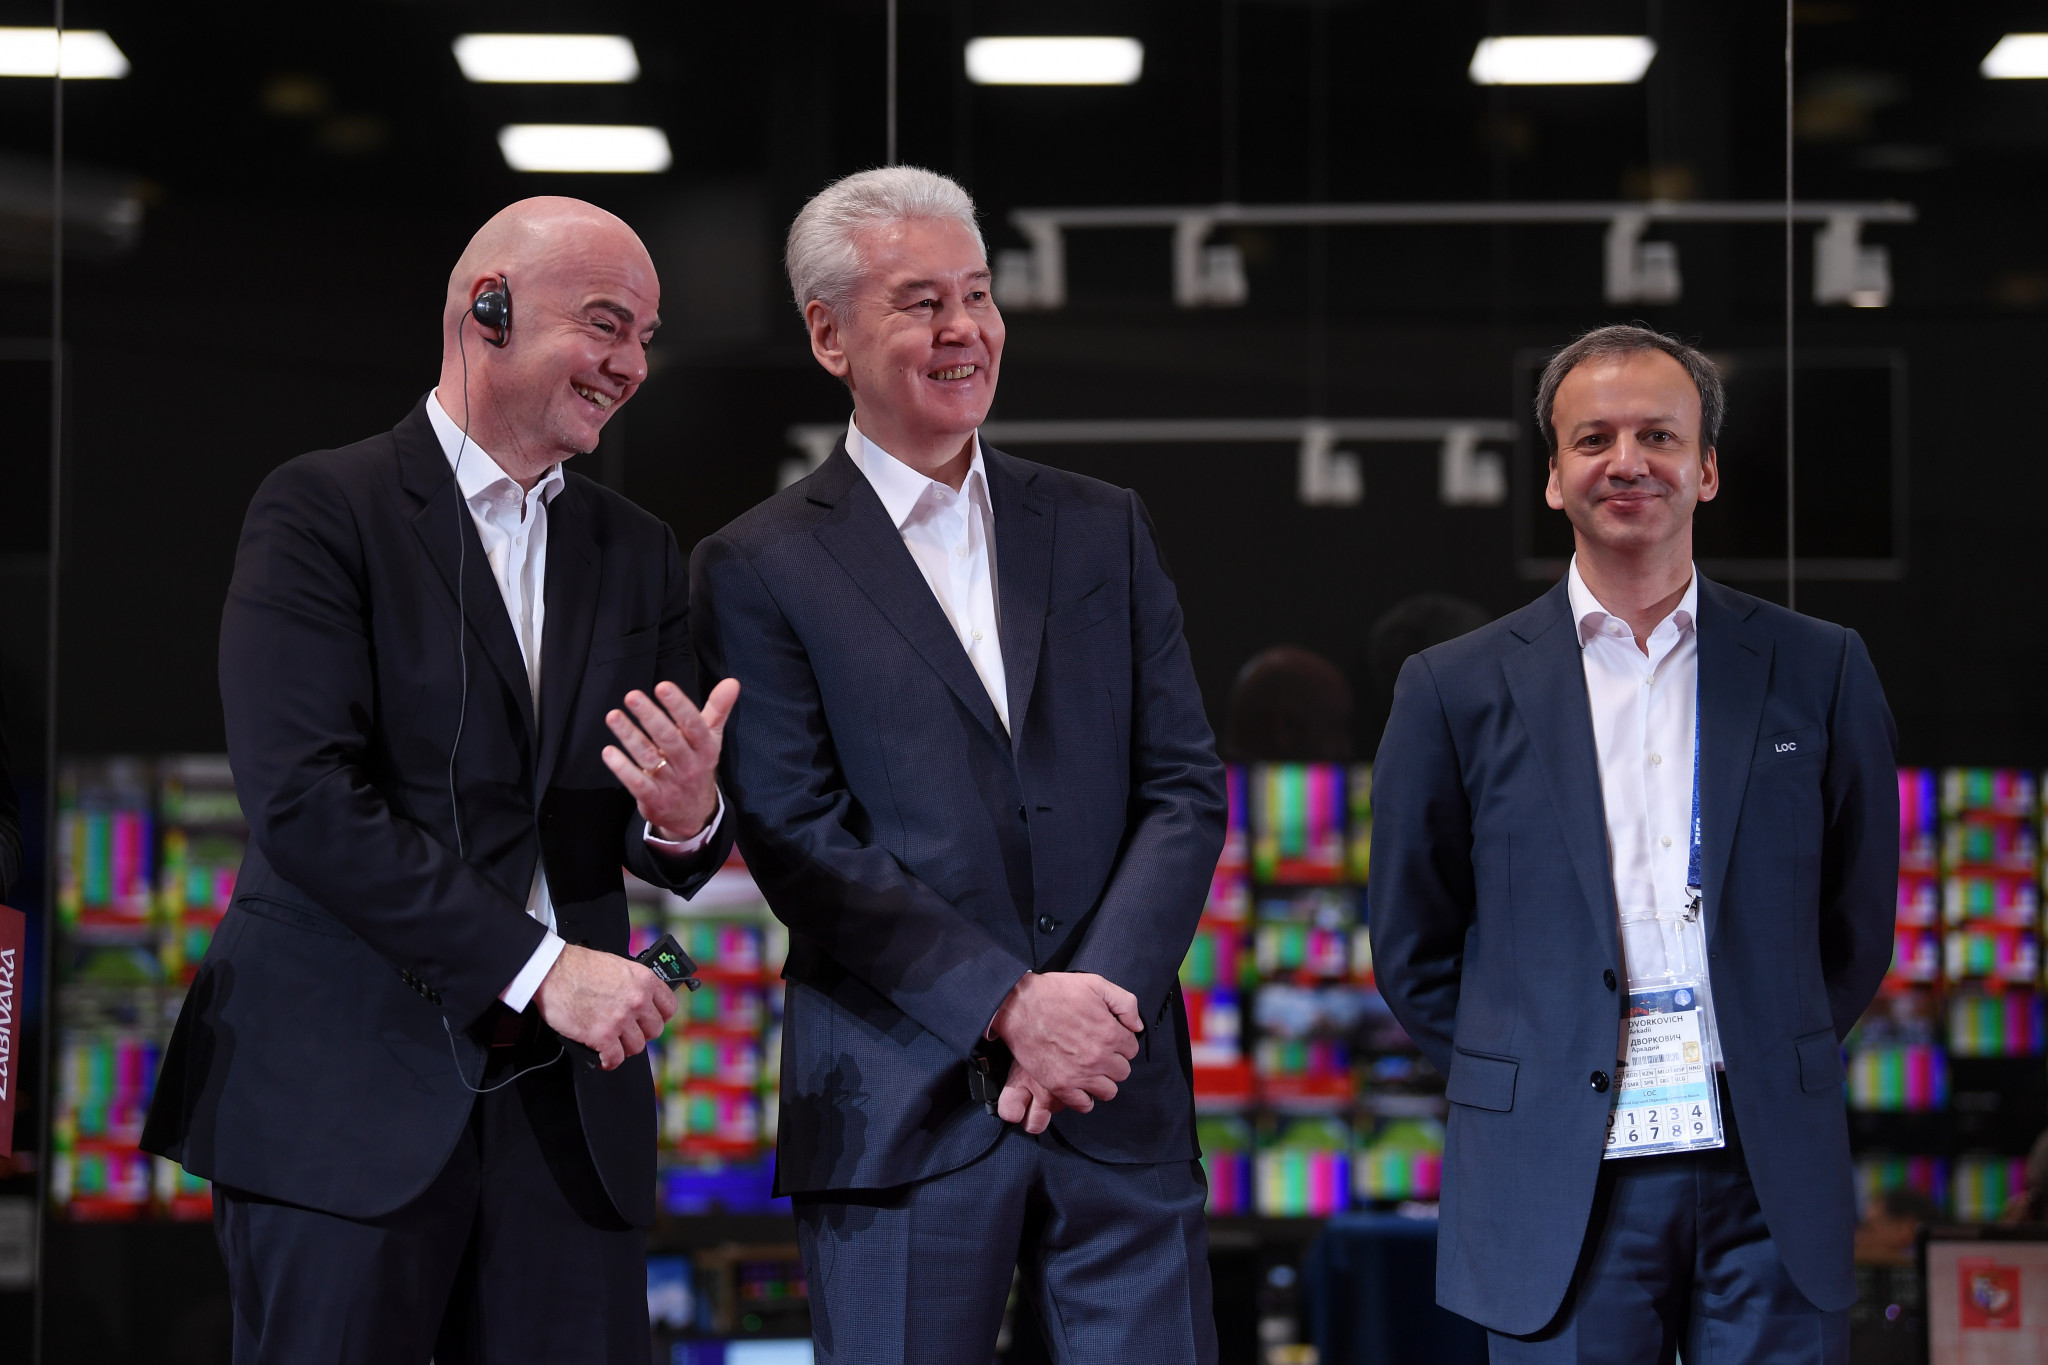 FIFA President Gianni Infantino, left, said there was scope for more cooperation with FIDE ©Getty Images